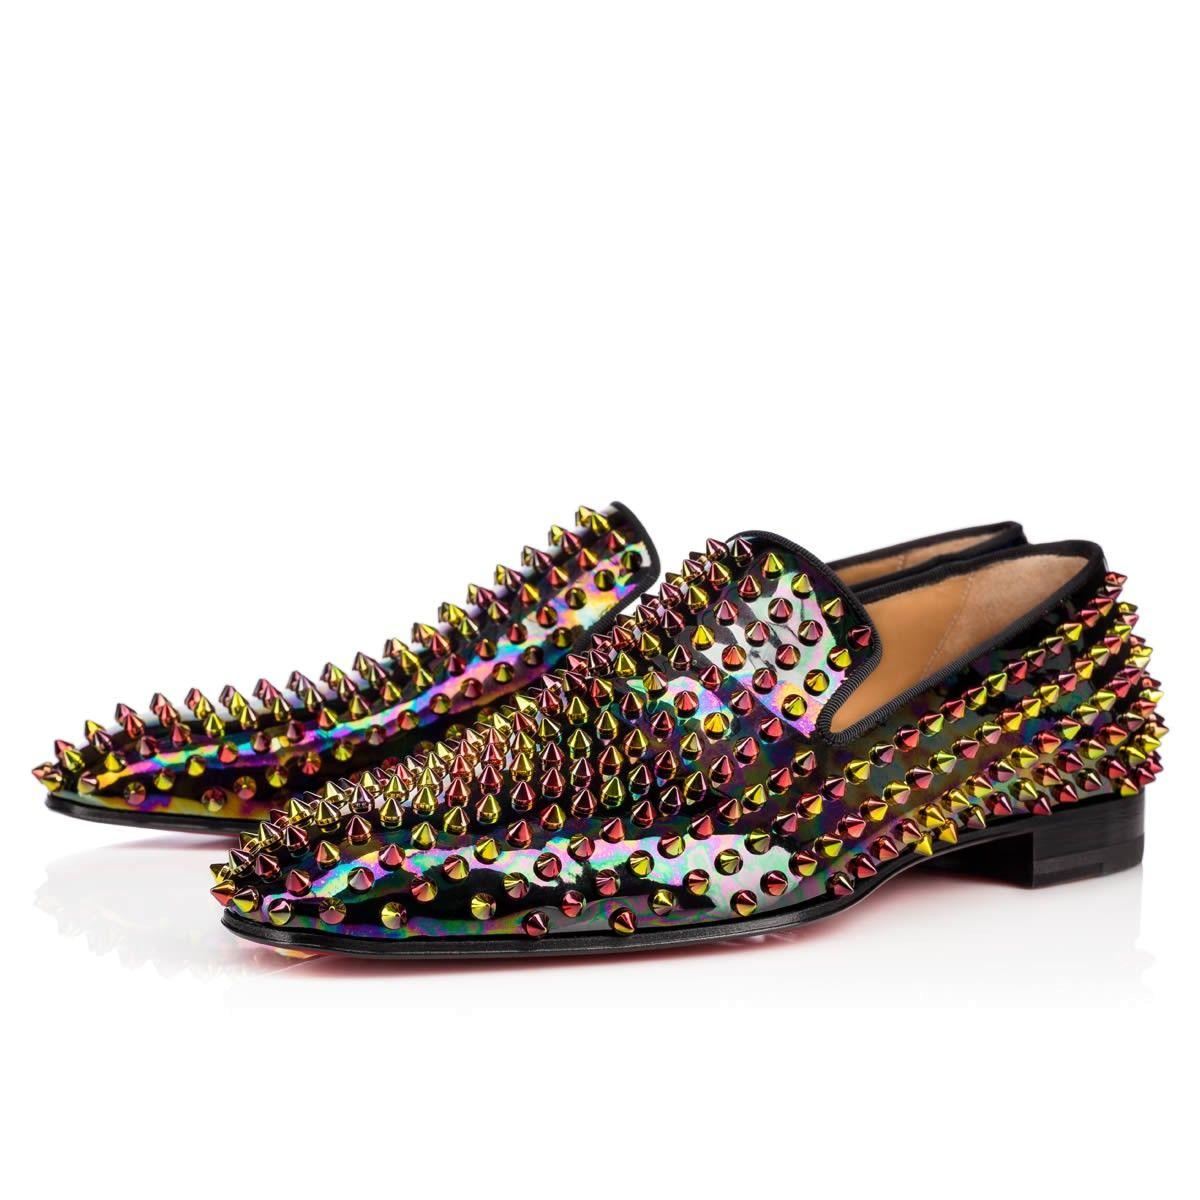 38a3a0ca656a CHRISTIAN LOUBOUTIN Dandelion Spikes Flat Black Gold-Multi Patent Leather -  Men Shoes - Christian Louboutin.  christianlouboutin  shoes